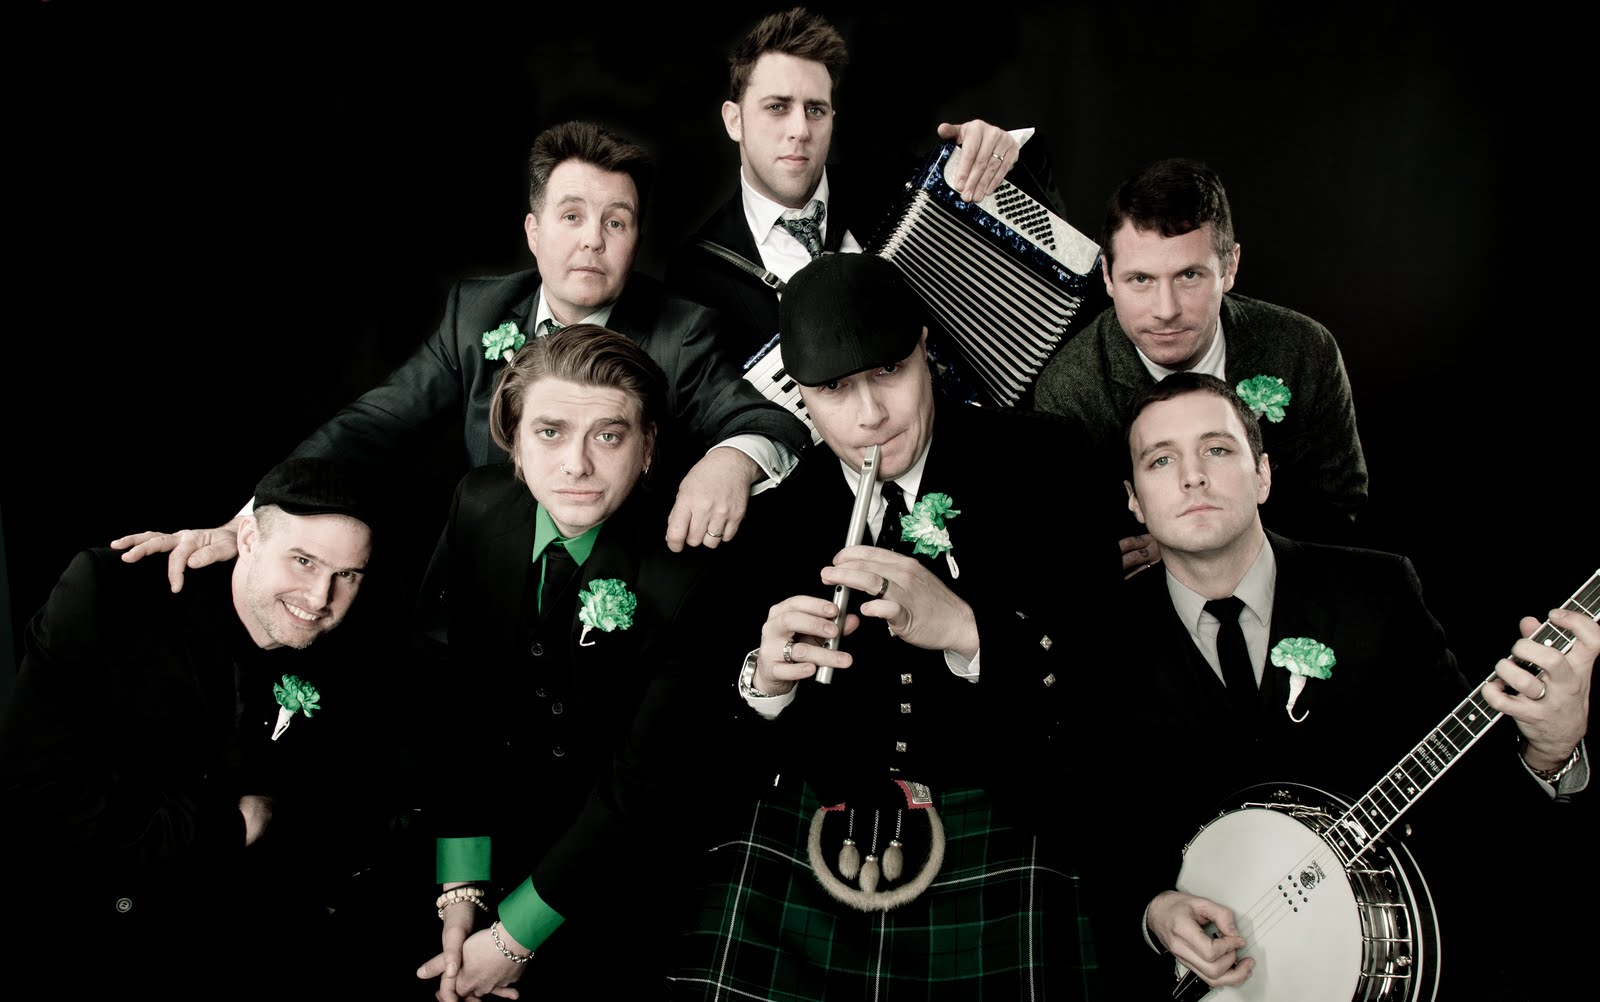 dropkick_murphys-group_photo